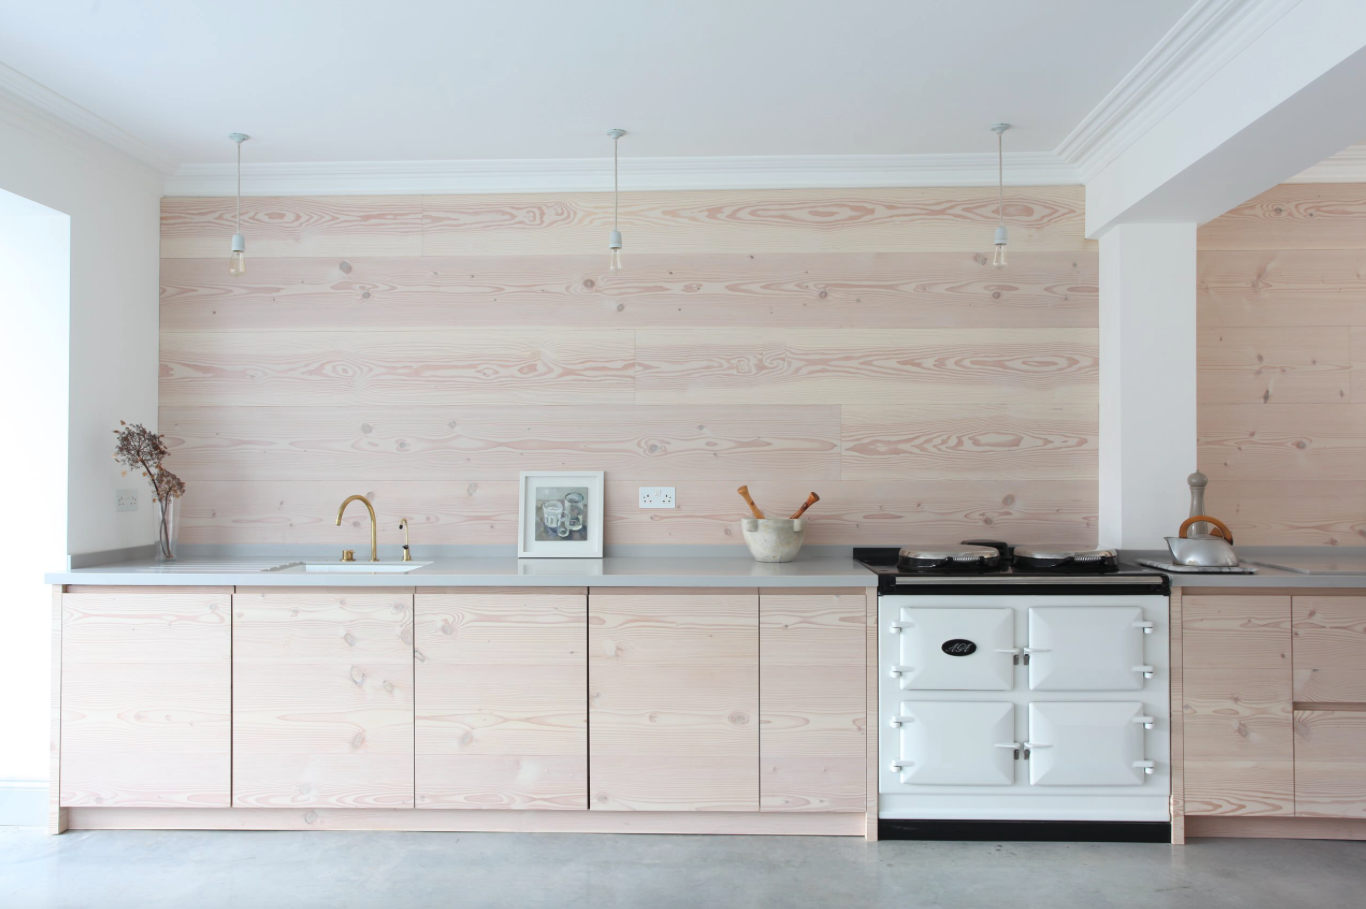 Scandinavian Style In London Douglas Fir Boards For The Walls And Cupboards And Color Matched With Elephant Timber Kitchen House Interior Kitchen Renovation